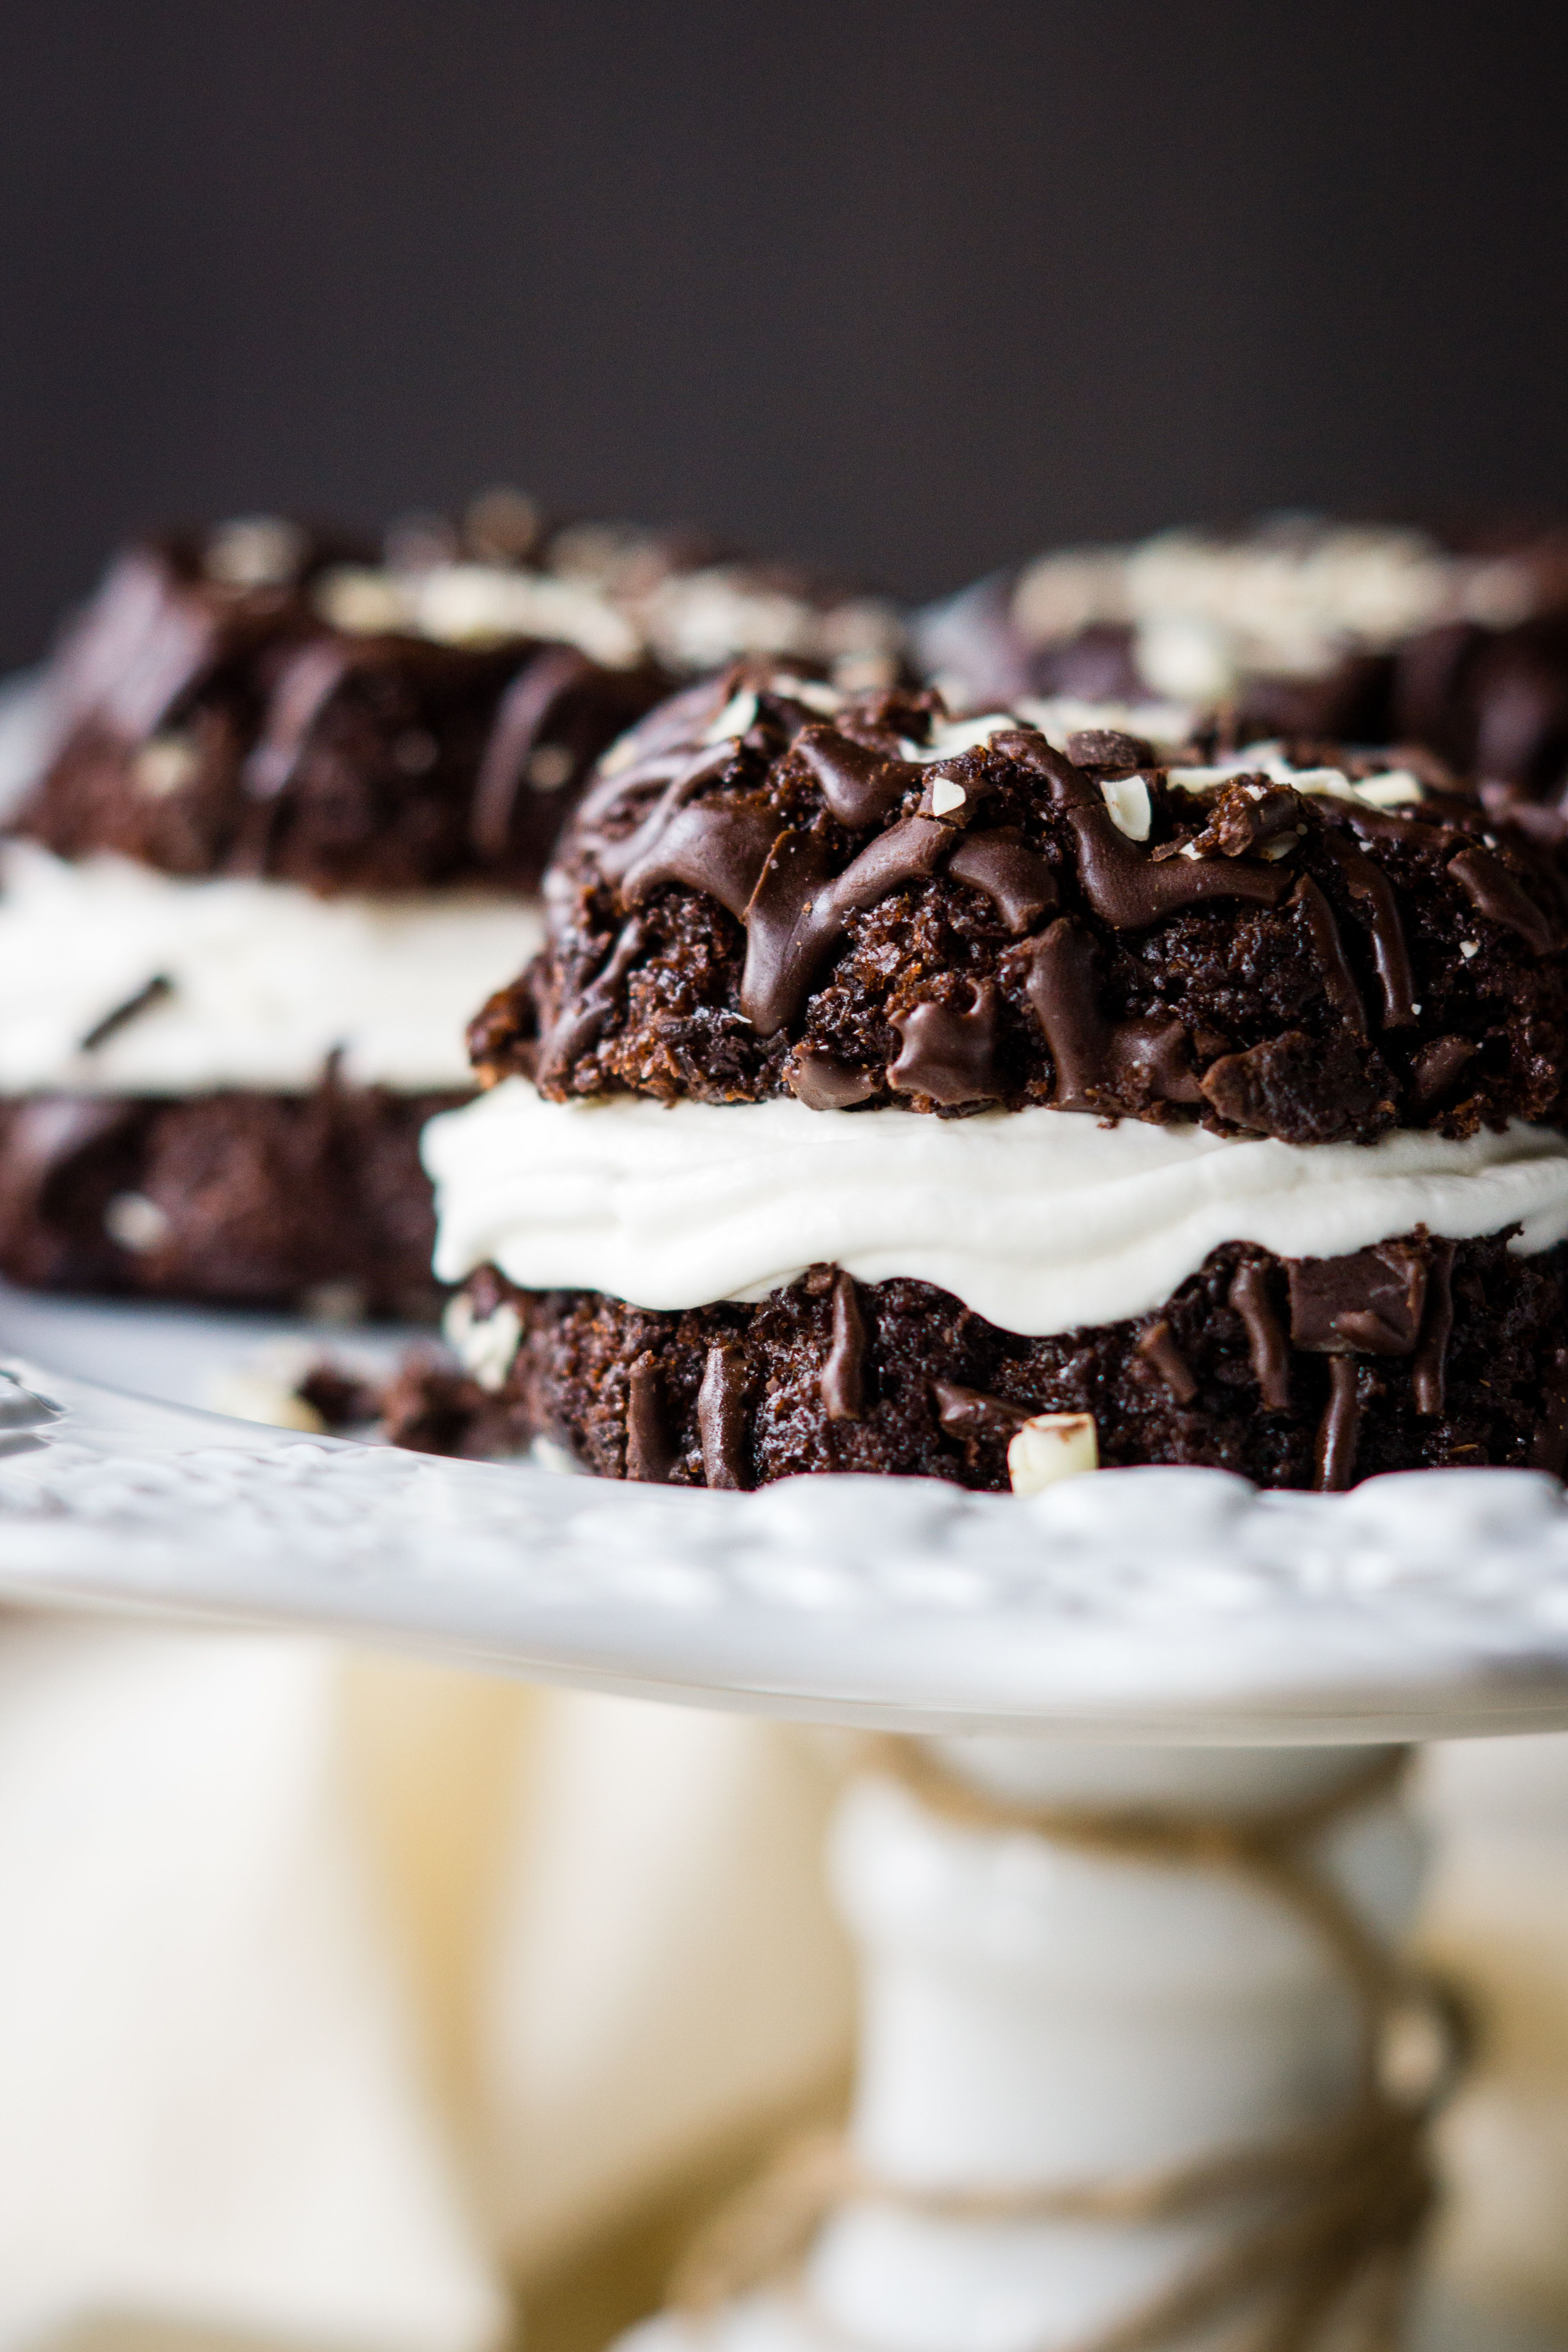 Chocolate bundt cakes with marshmallow fluff buttercream